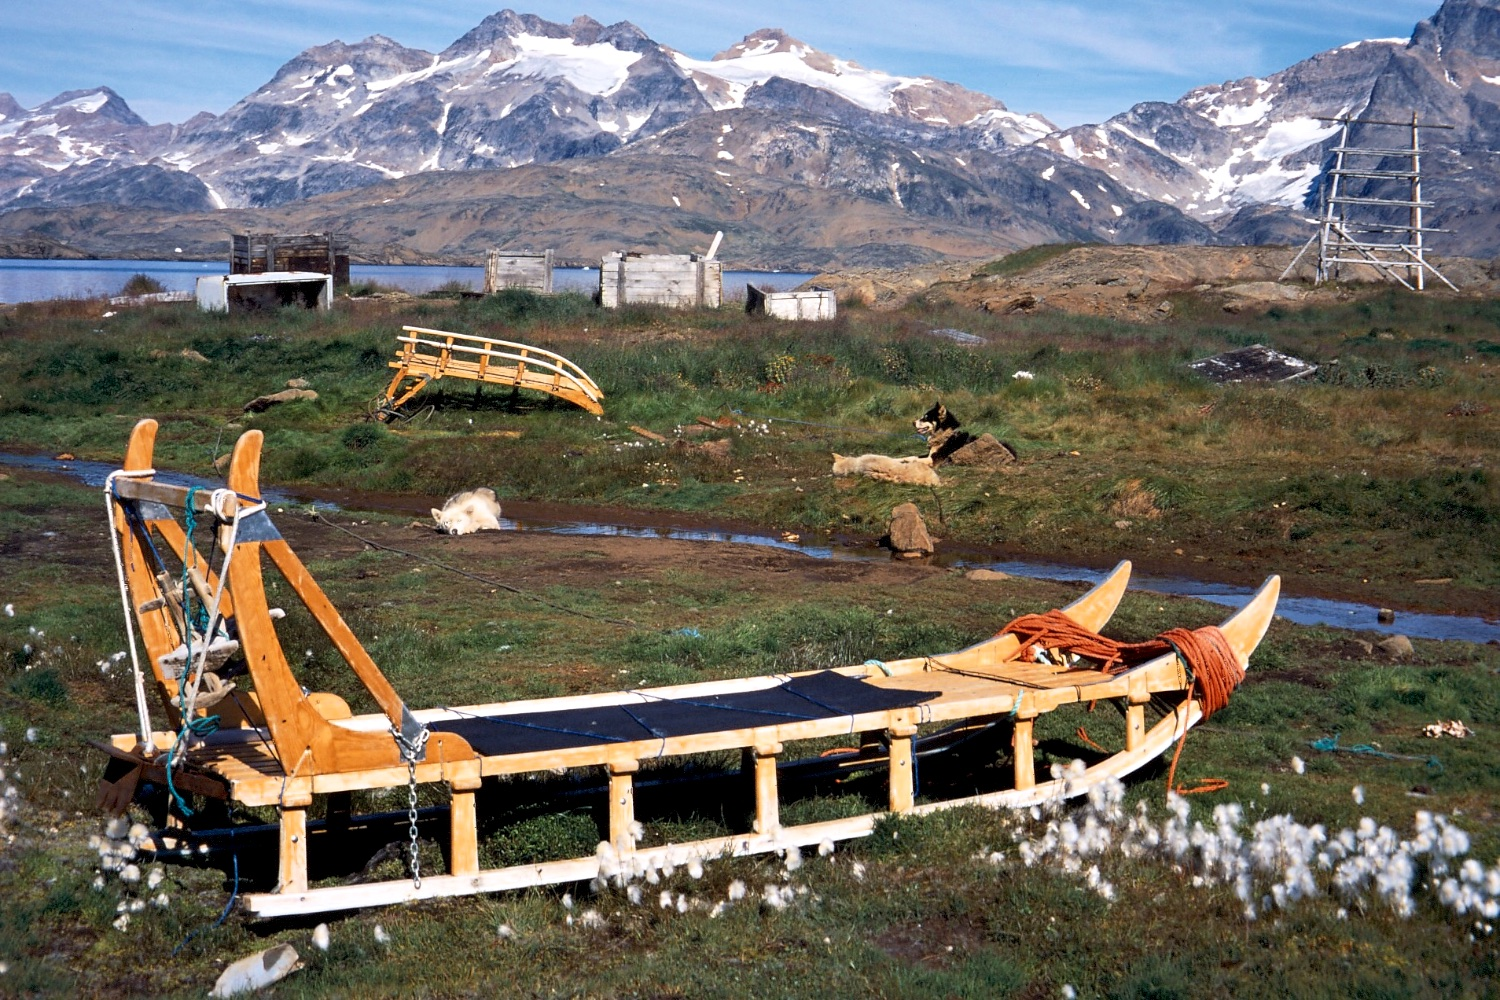 Sleds and Greenland sled dogs sit around until winter. Seeing the dogs made us think we'd love to return one day and travel by dog sled.